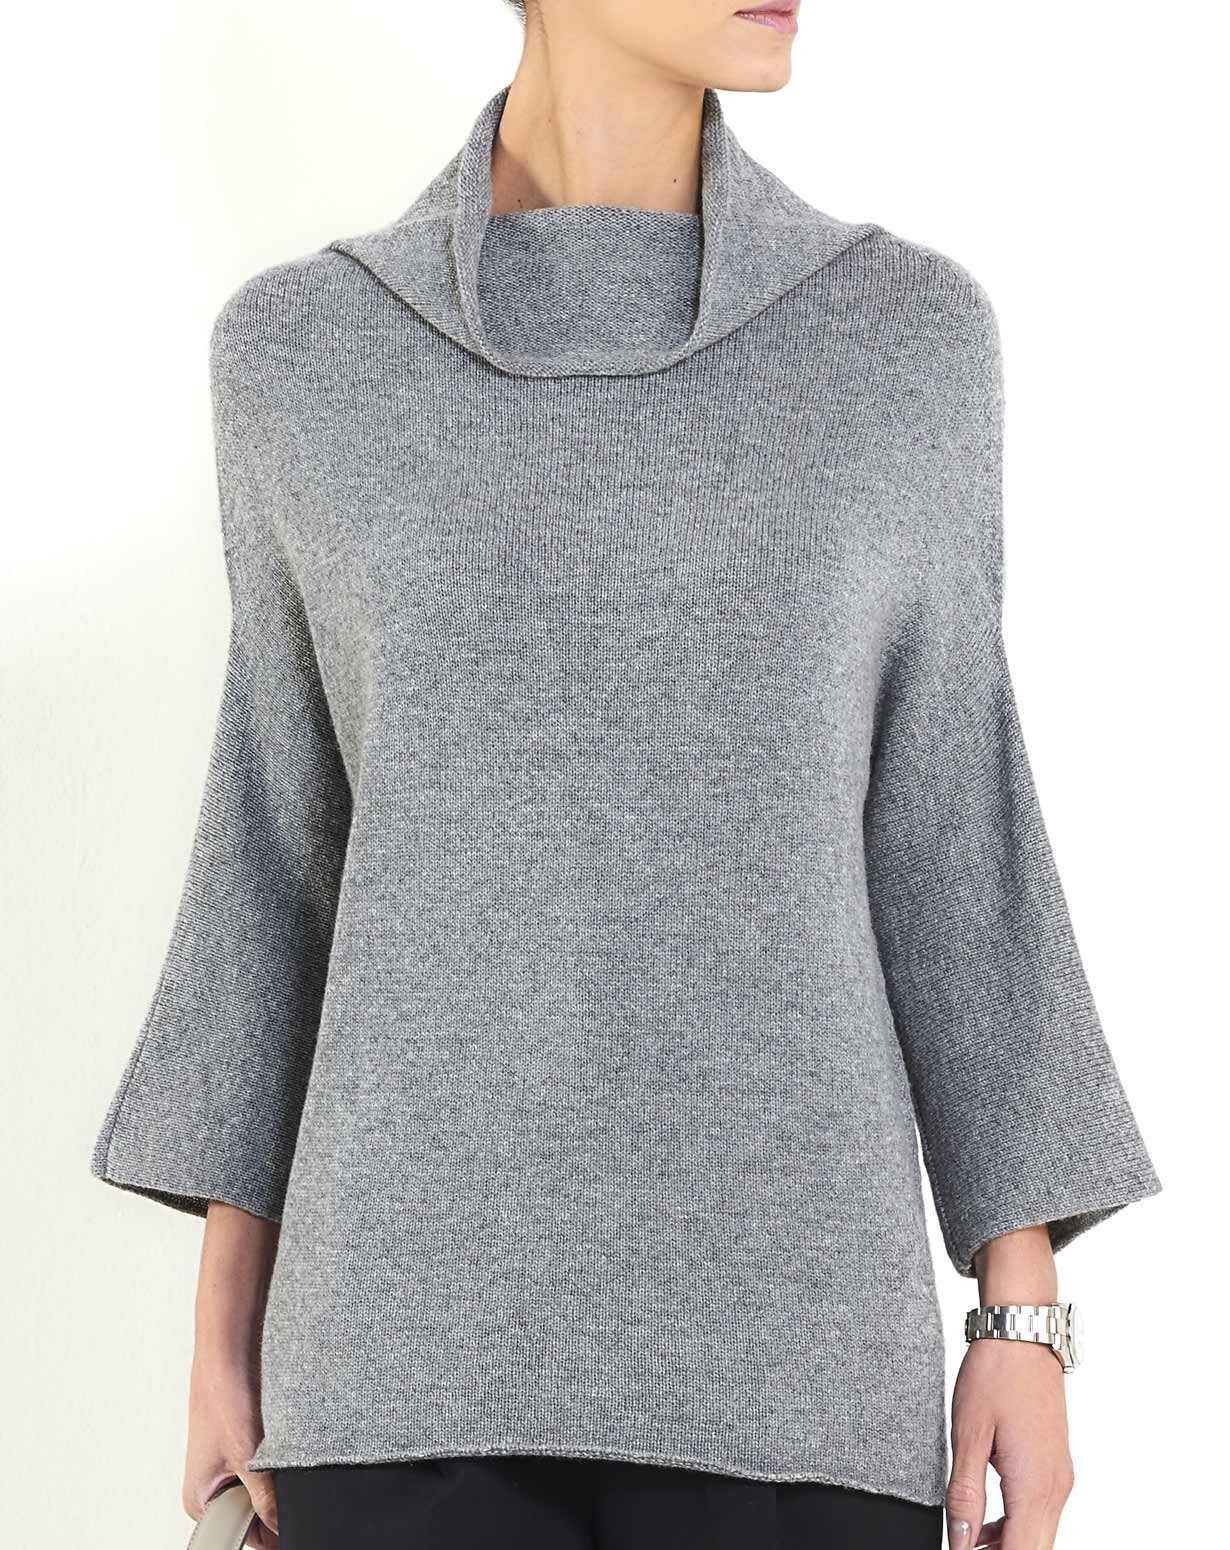 Women's Cashmere 3/4 Sleeve Cowl Neck